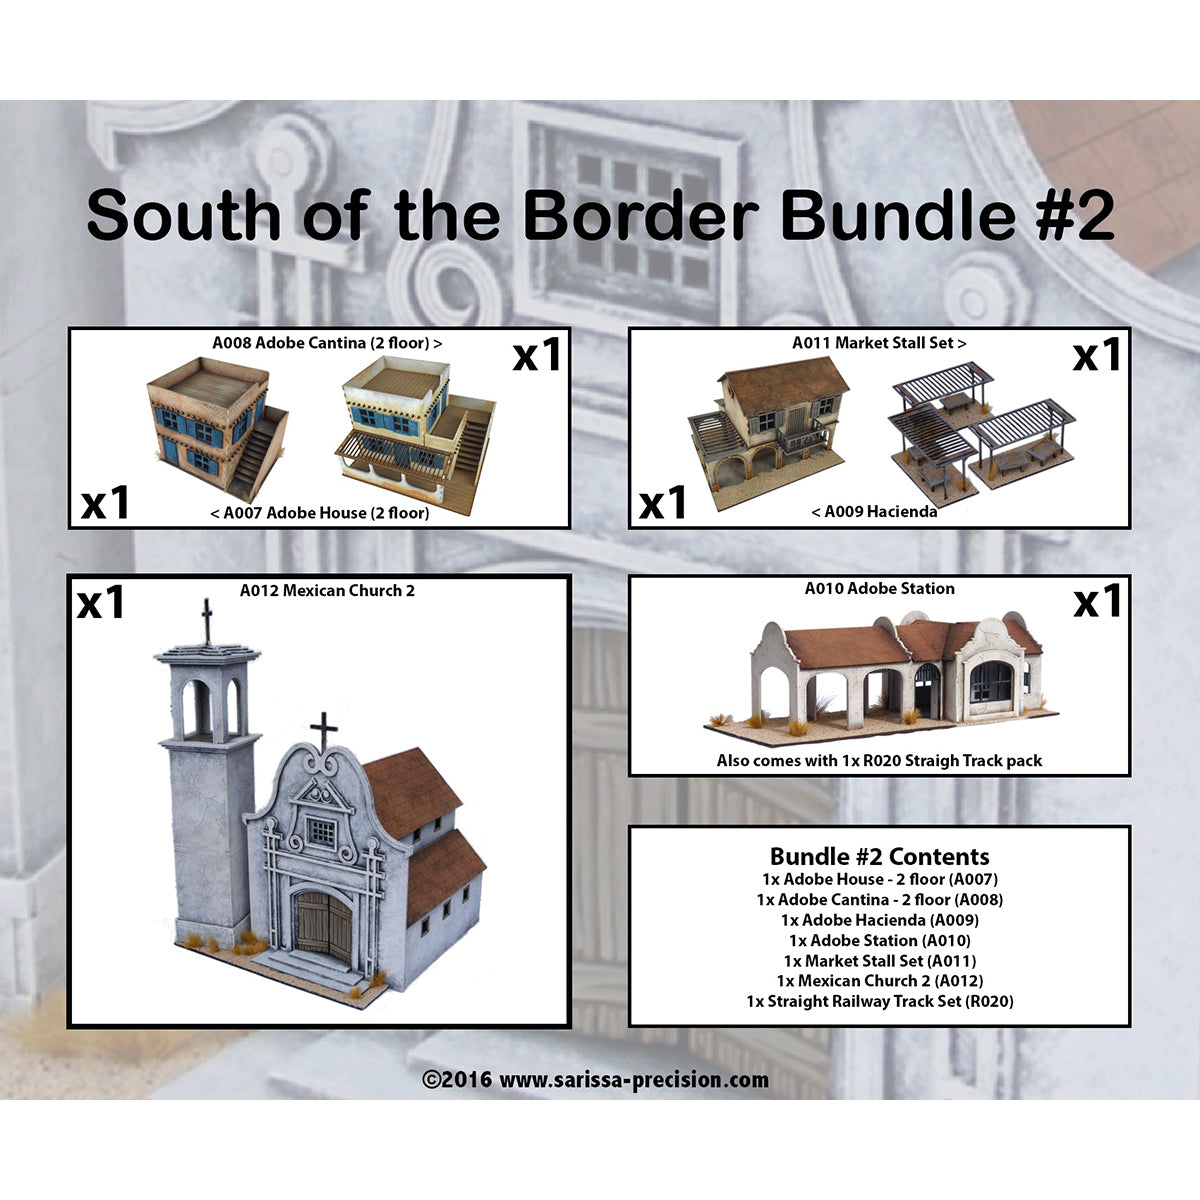 South of the Border Bundle #2